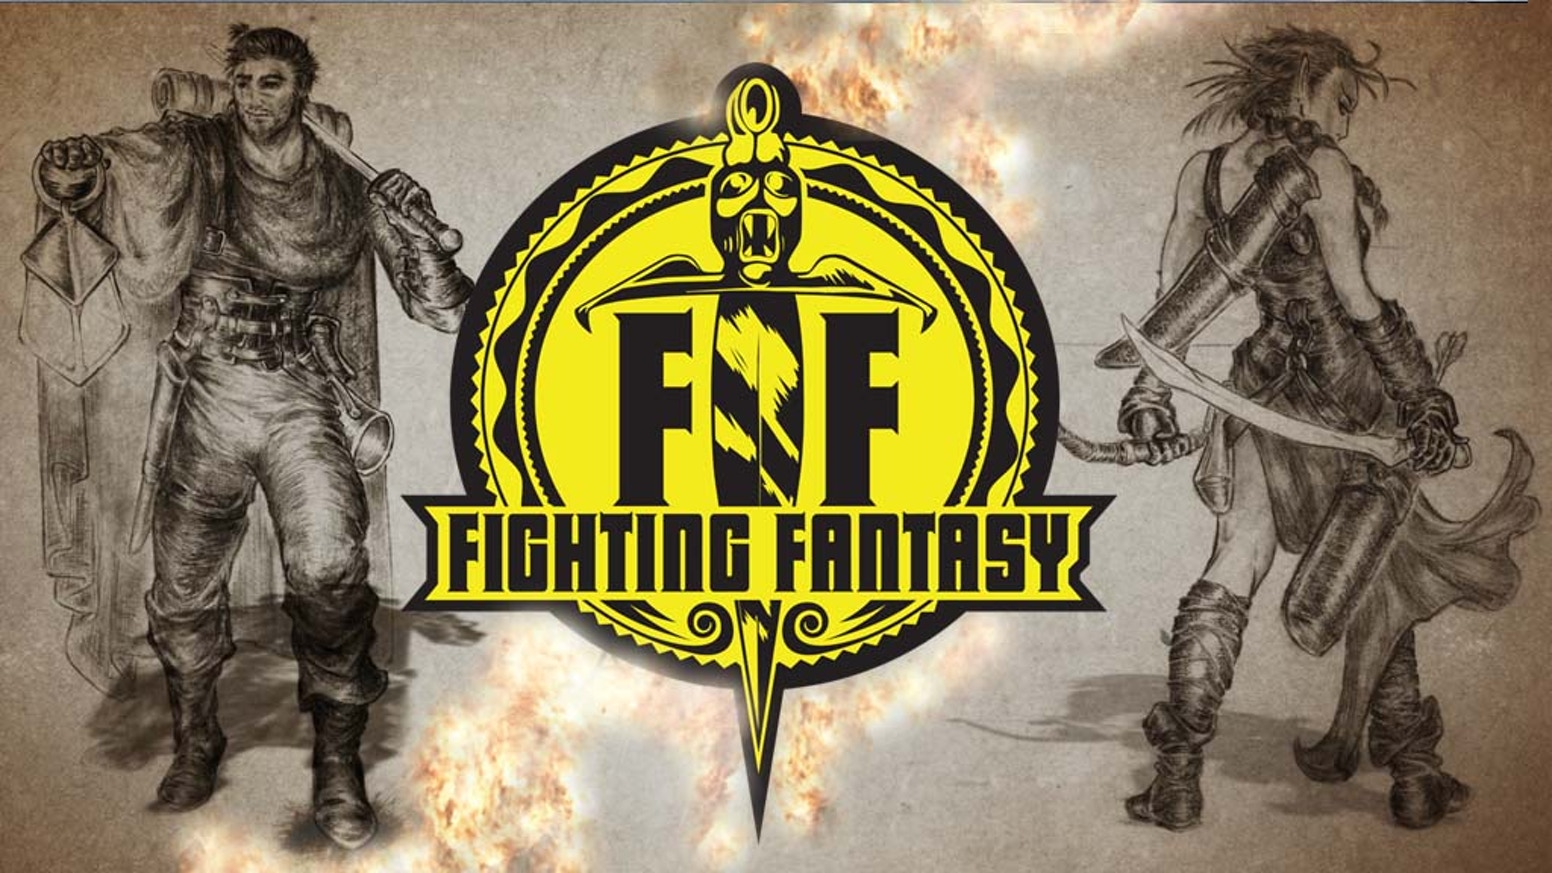 An officially-licensed, full-cast, audio drama series, based on the classic Fighting Fantasy gamebook range.